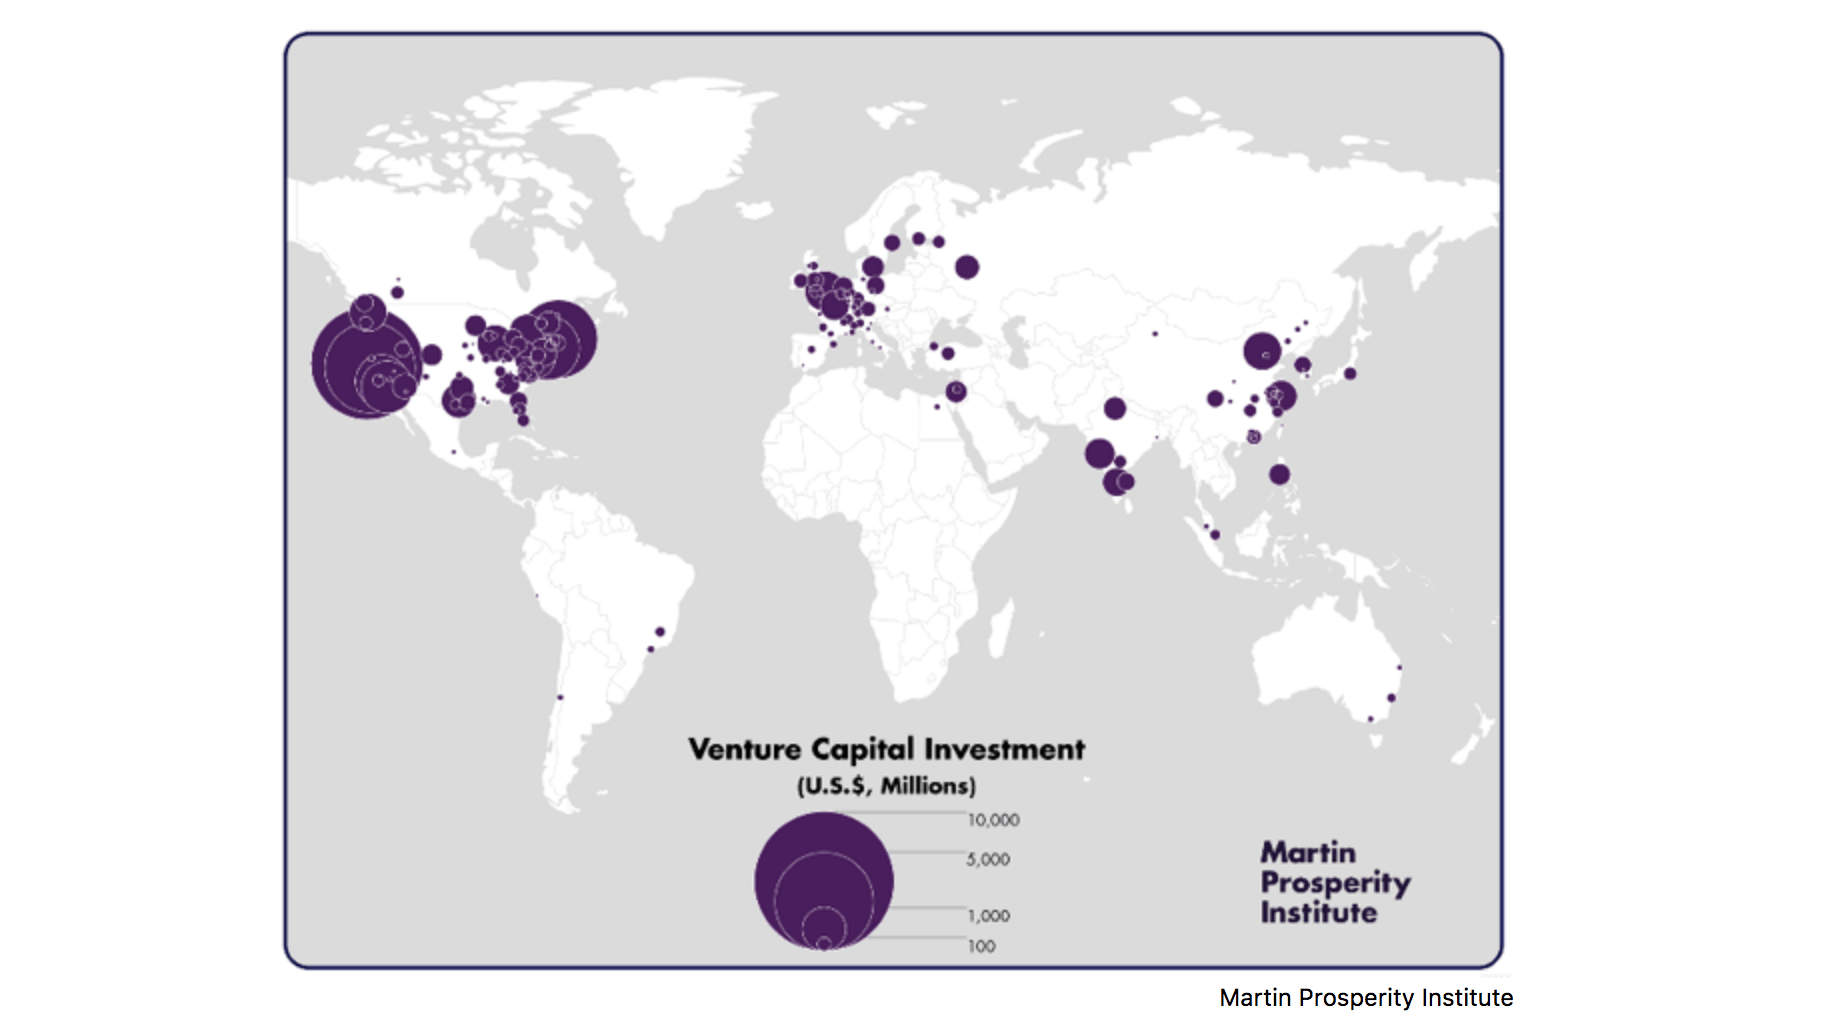 VC investment world map